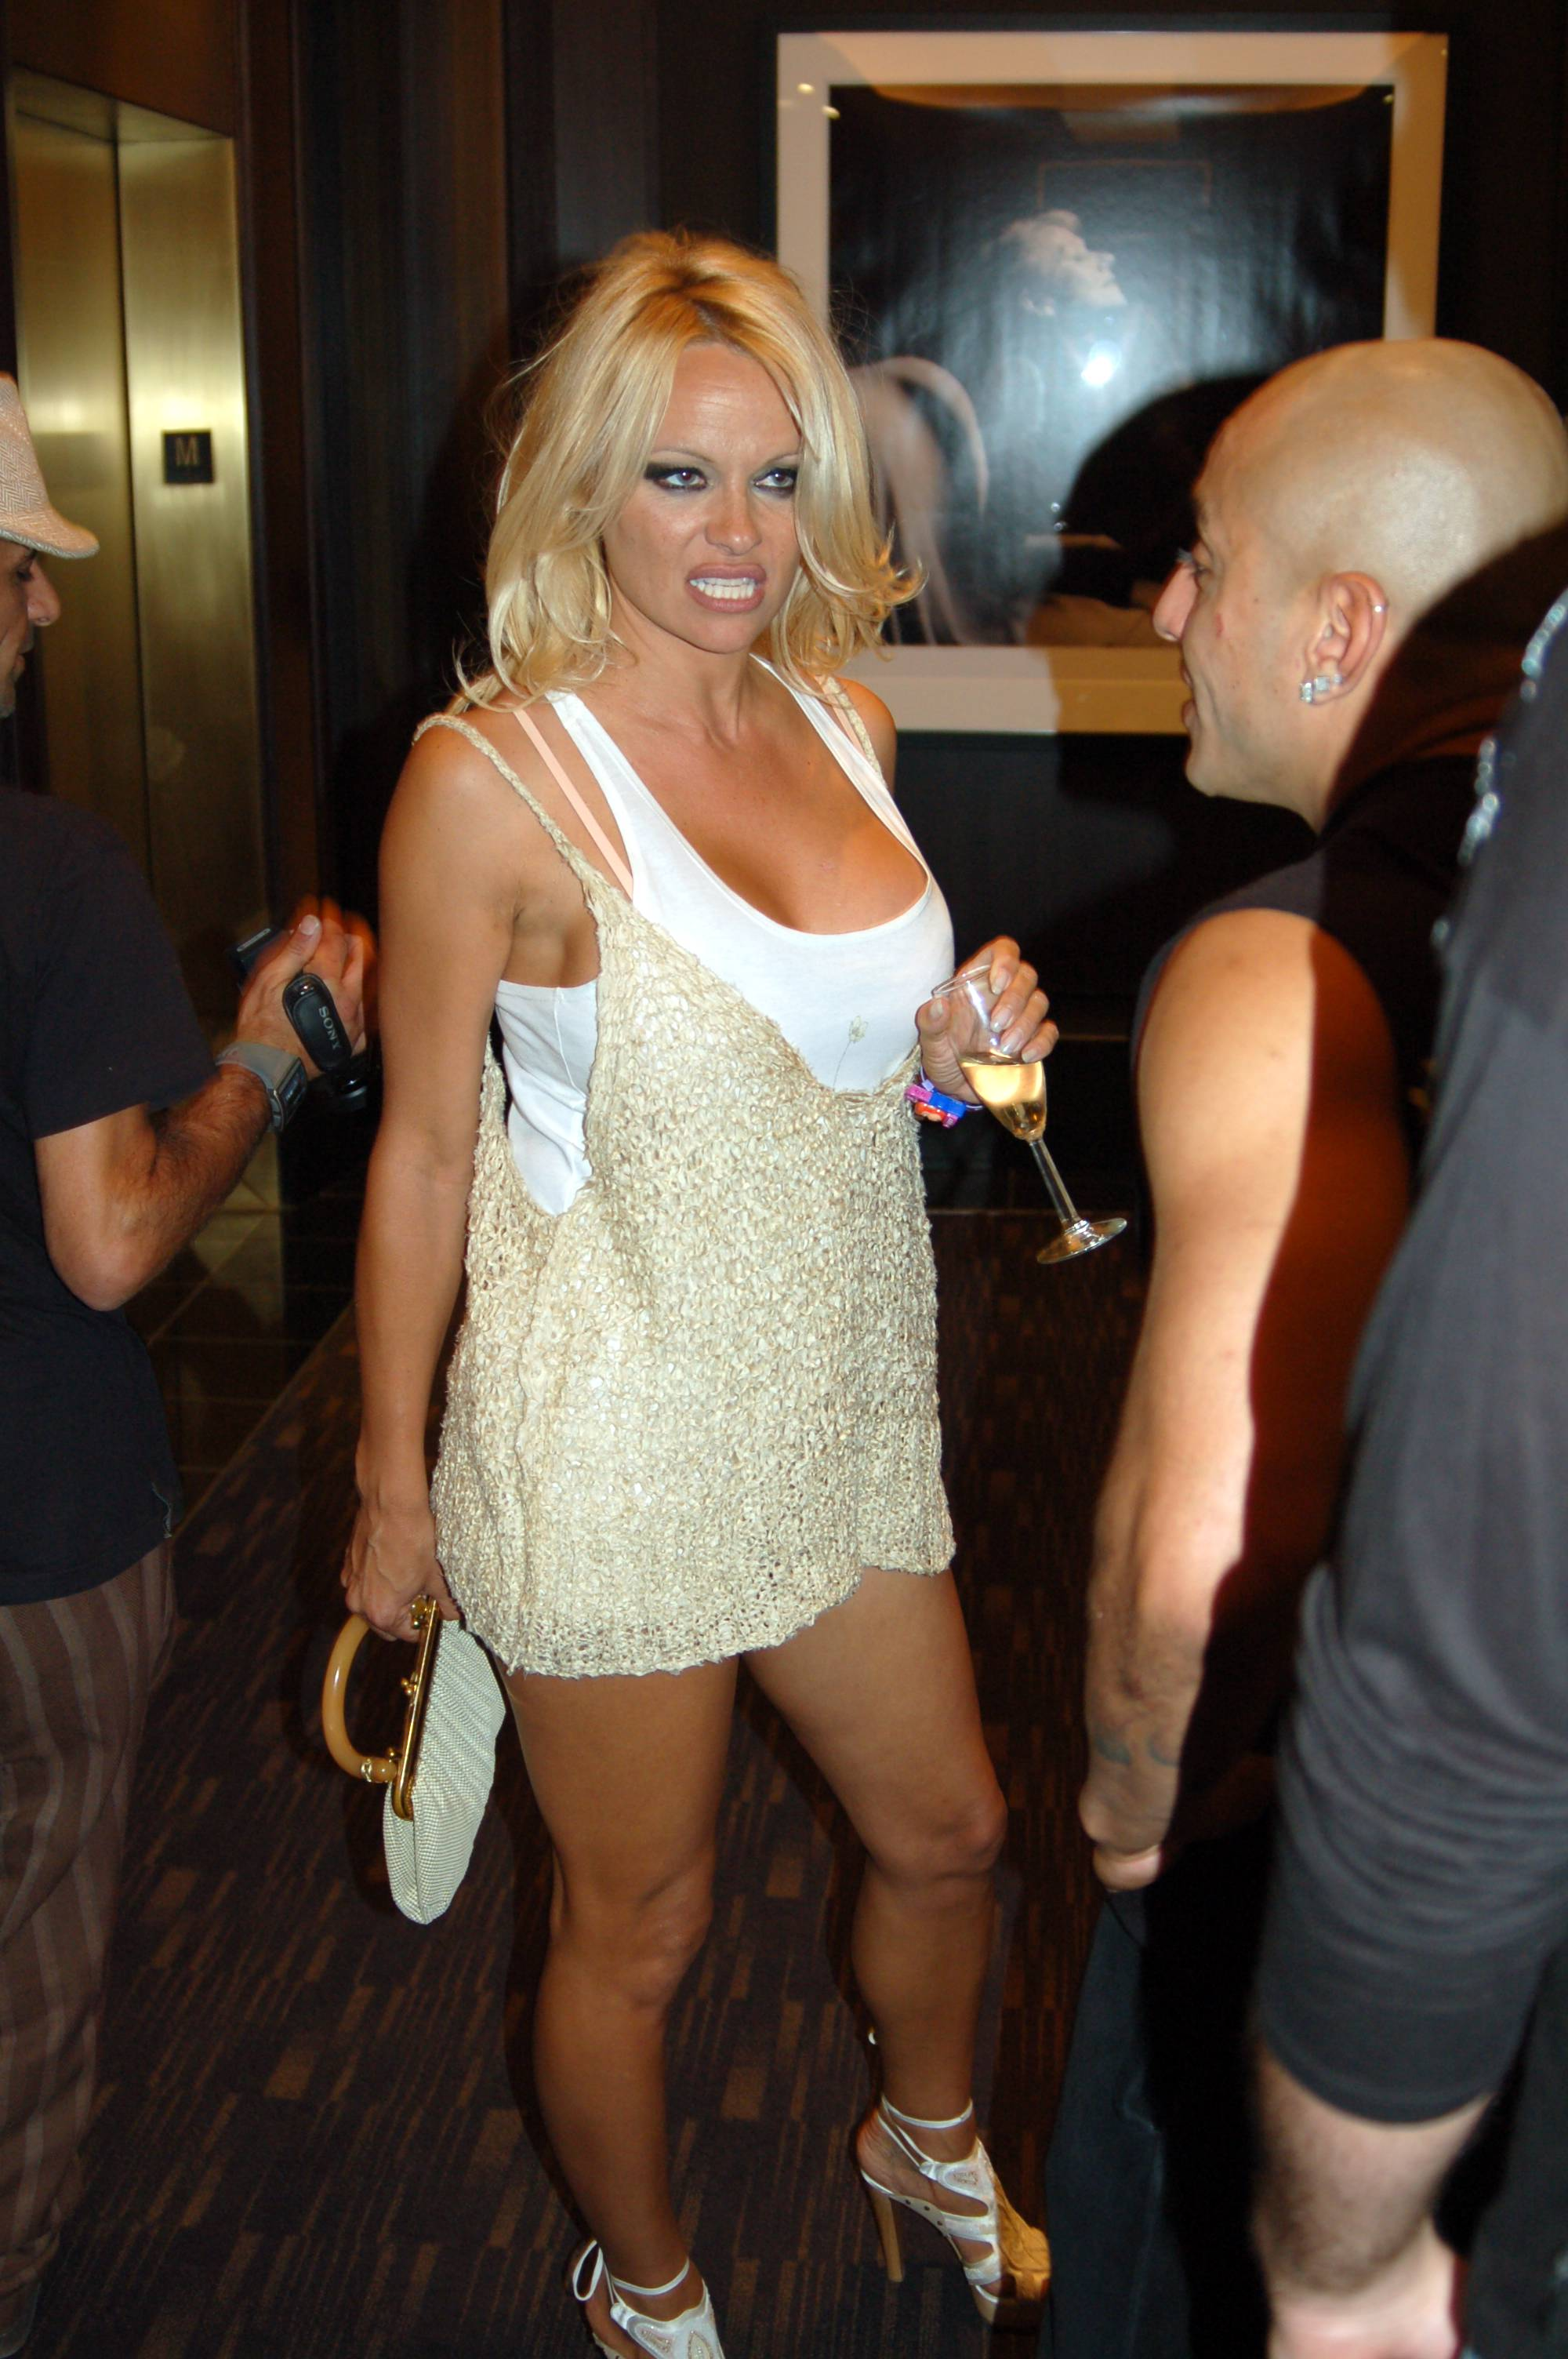 tommy Pamela anderson